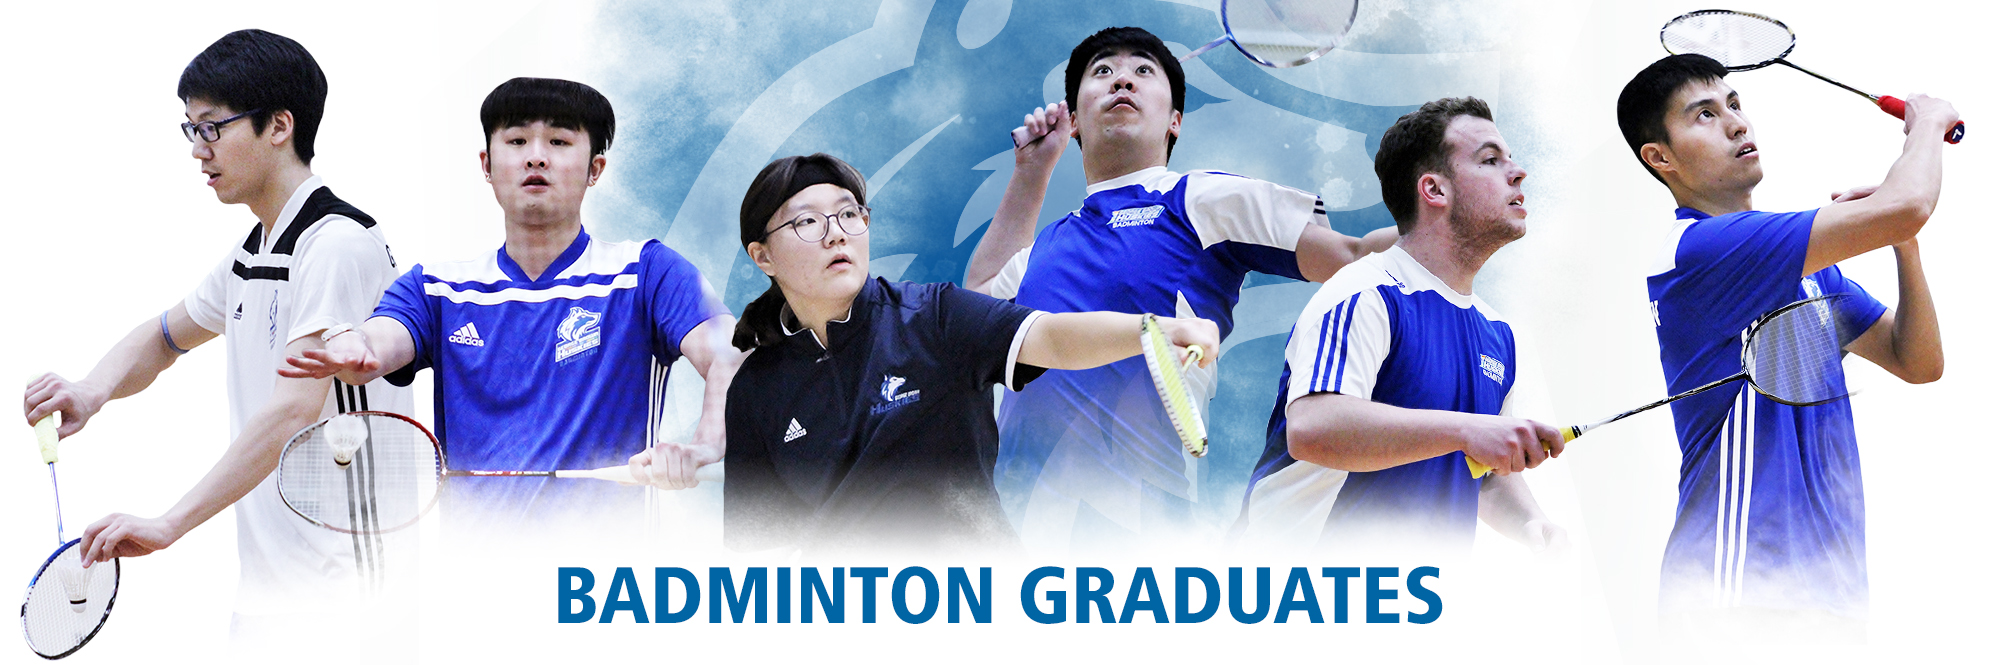 CELEBRATING SIX GRADUATING HUSKIES ON THE EVE OF THE CCAA NATIONAL BADMINTON CHAMPIONSHIP